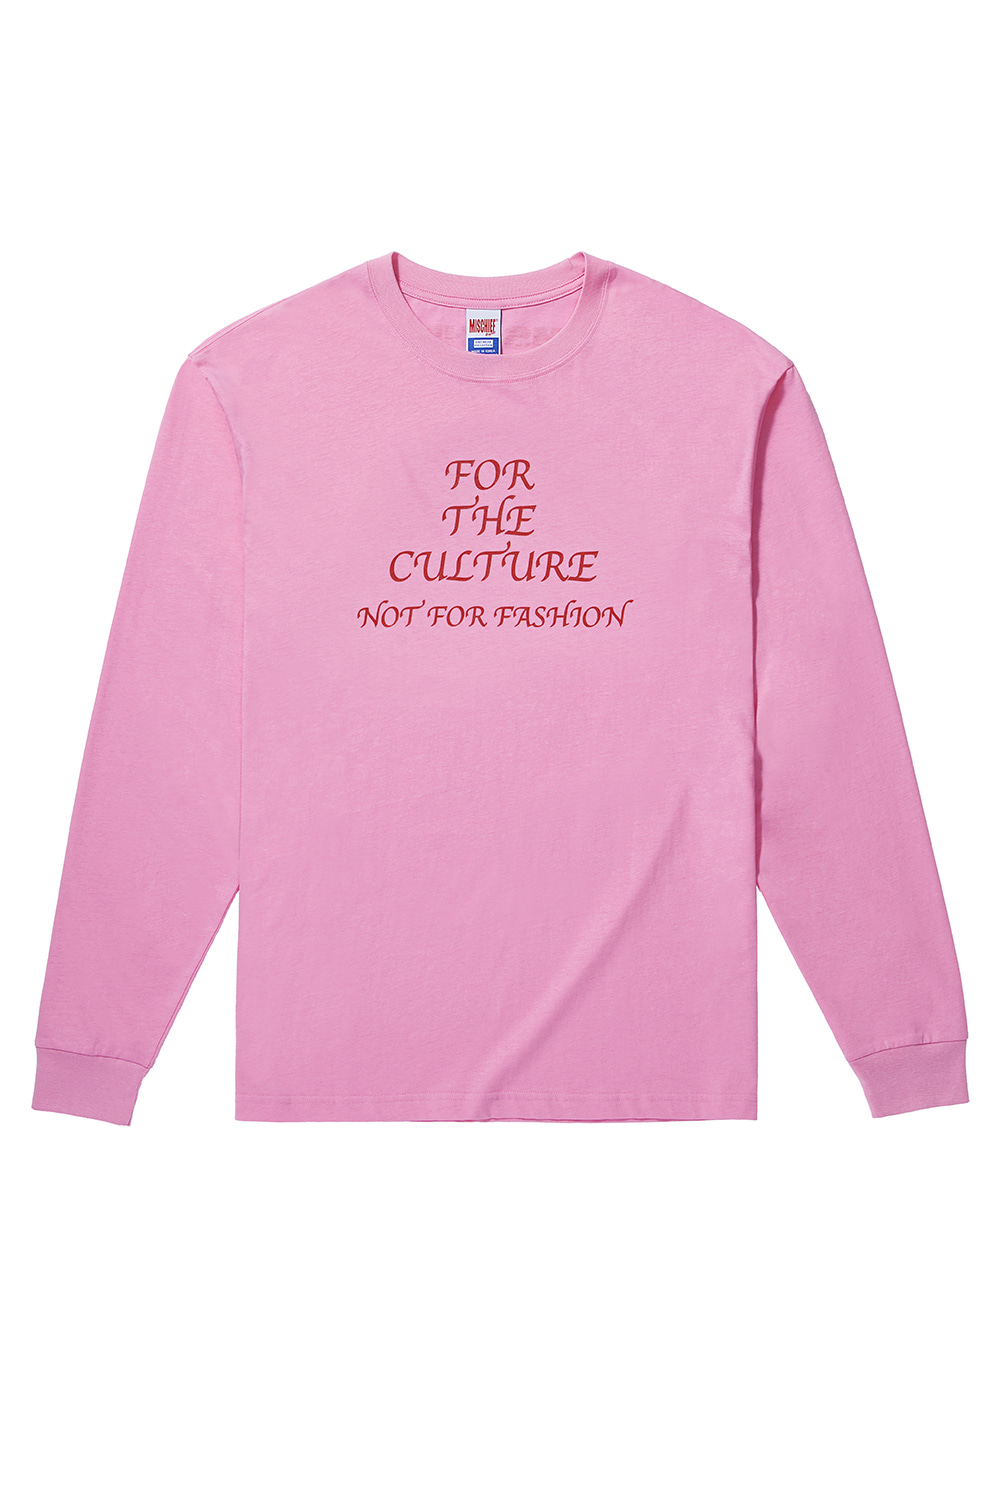 FOR THE CULTURE LONG SLEEVE_pink